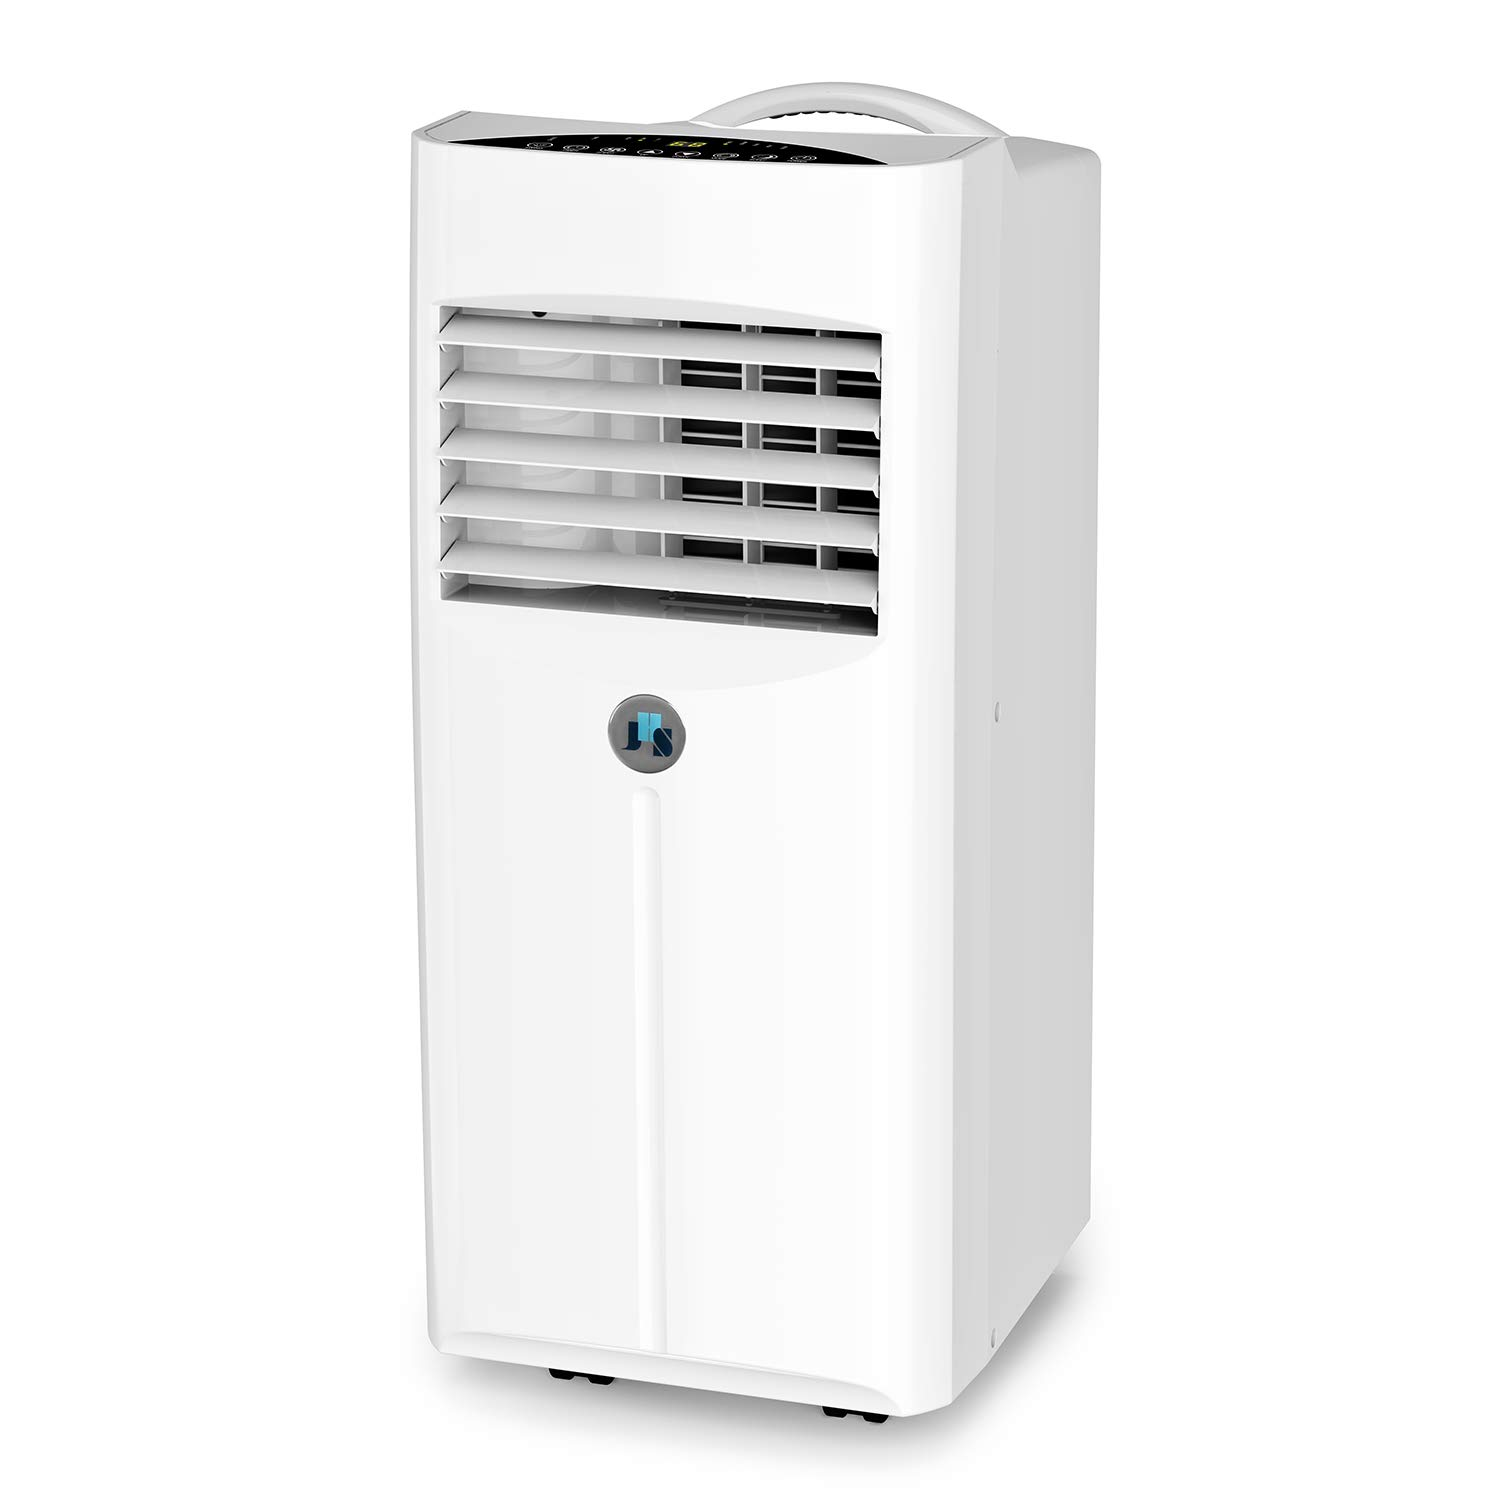 JHS 10,000 BTU Portable Air Conditioner, 3-in-1 Floor AC Unit with 2 Fan Speeds, Remote Control and Digital LED Display, Cover up to 300 Sq. Ft. by JHS